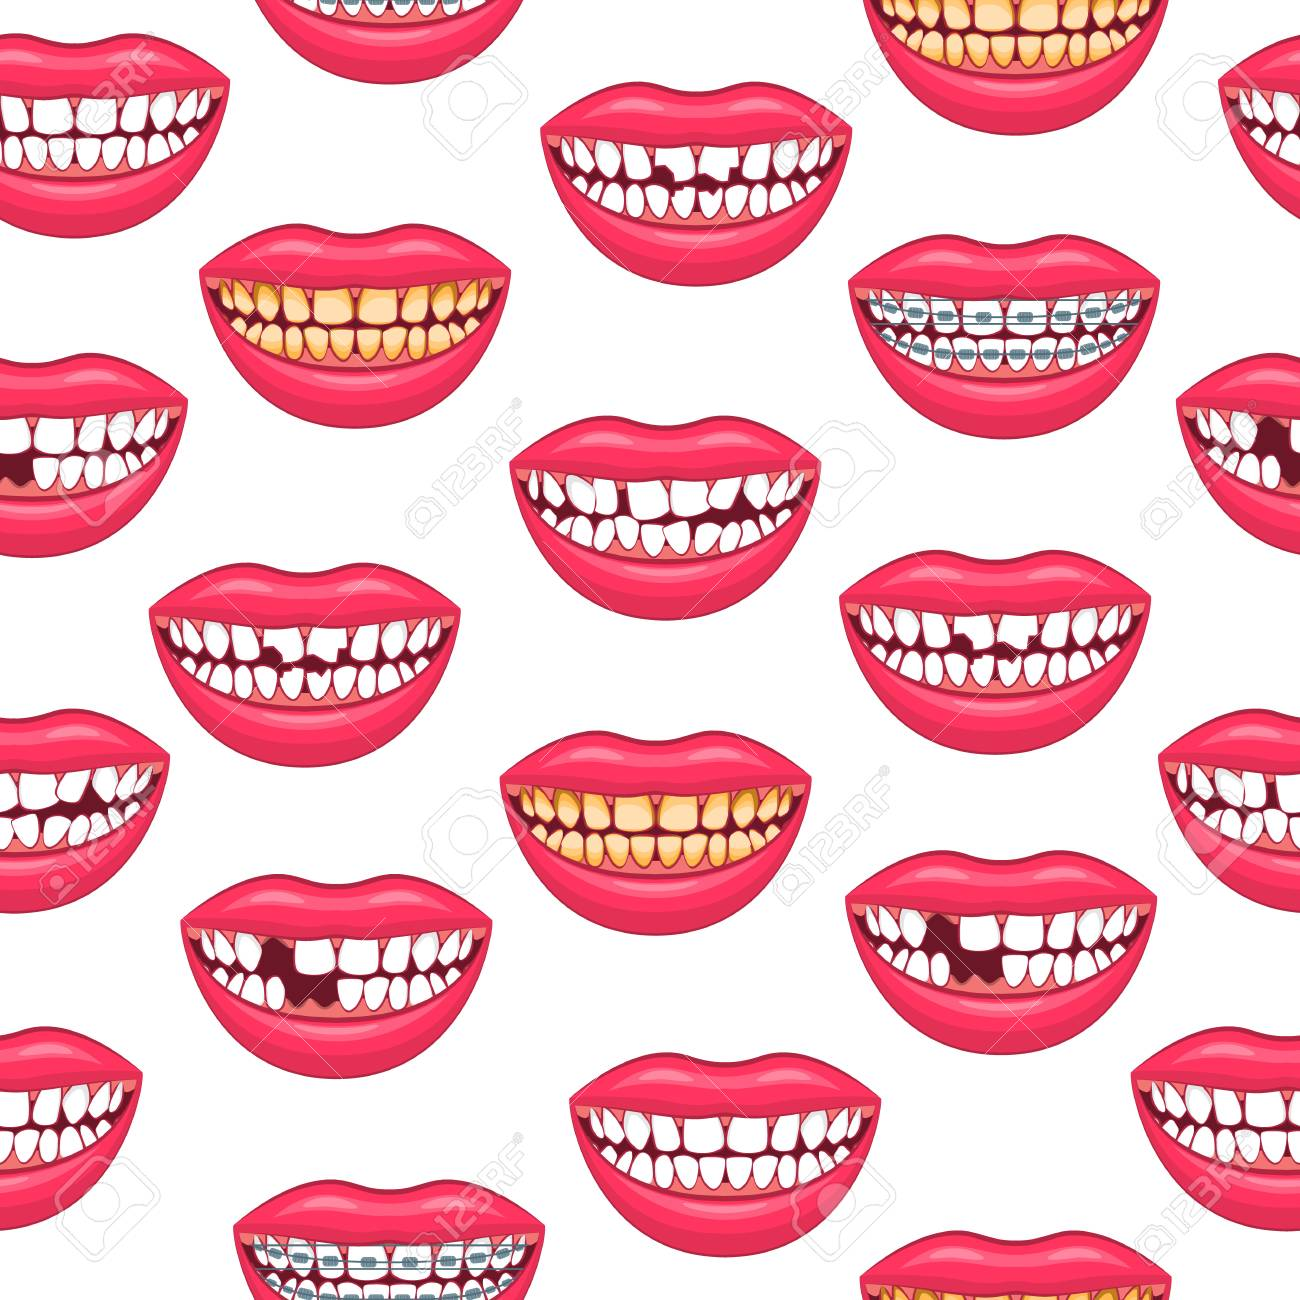 Realistic Detailed 3d Dental Problems Seamless Pattern Background